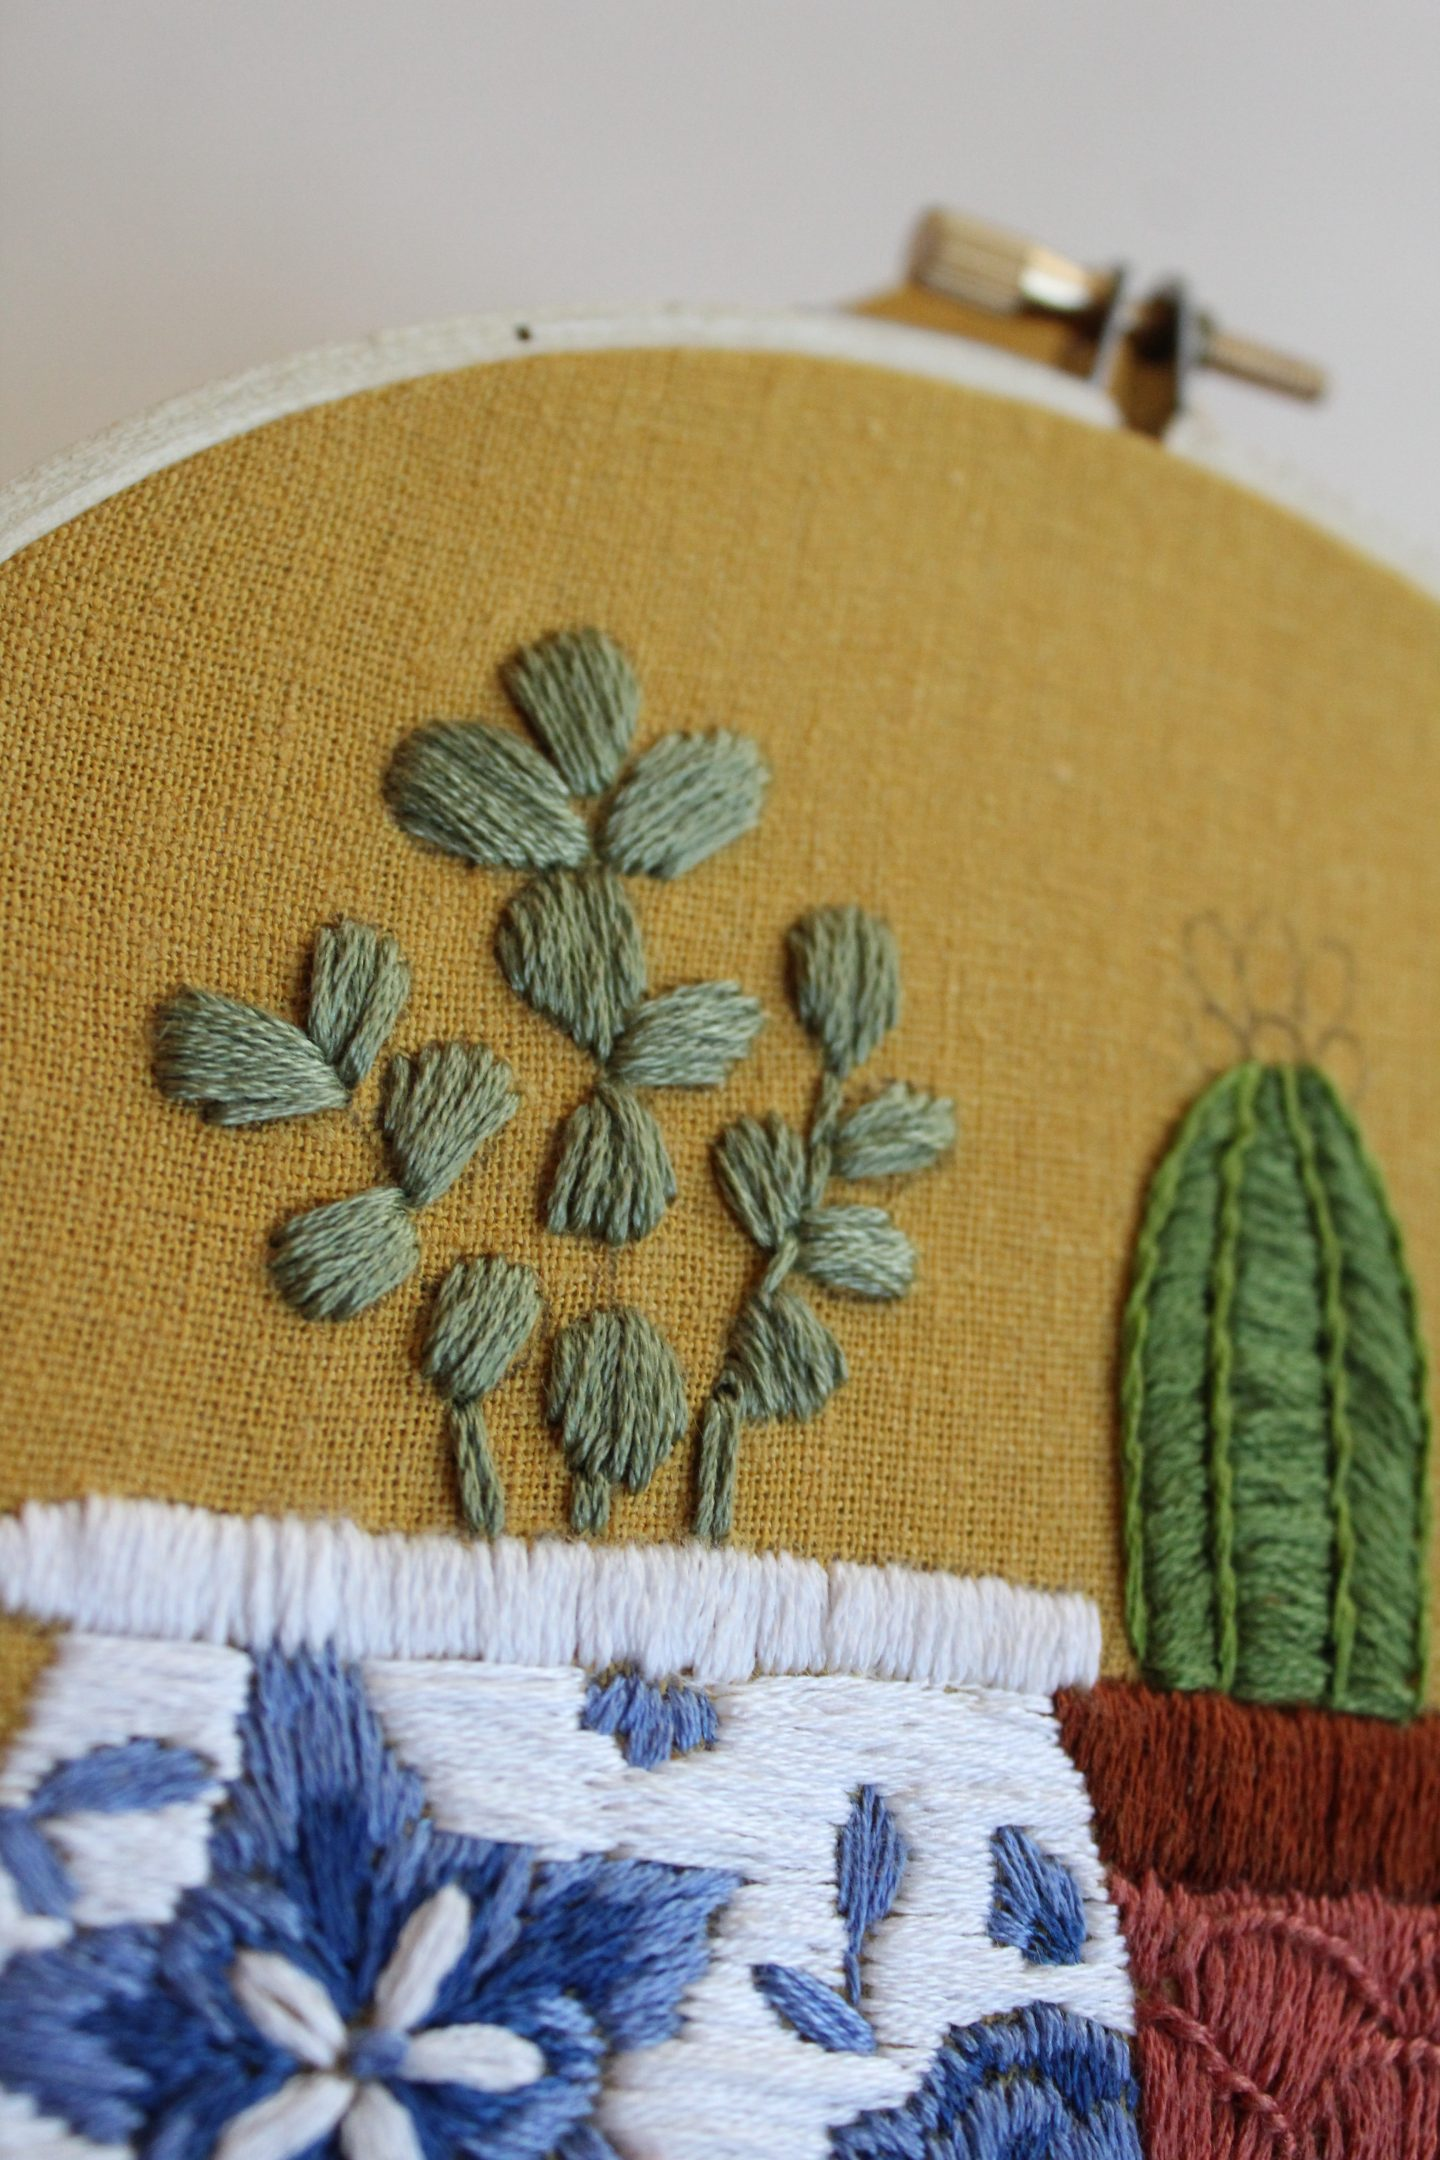 satin stitches used in an embroidery